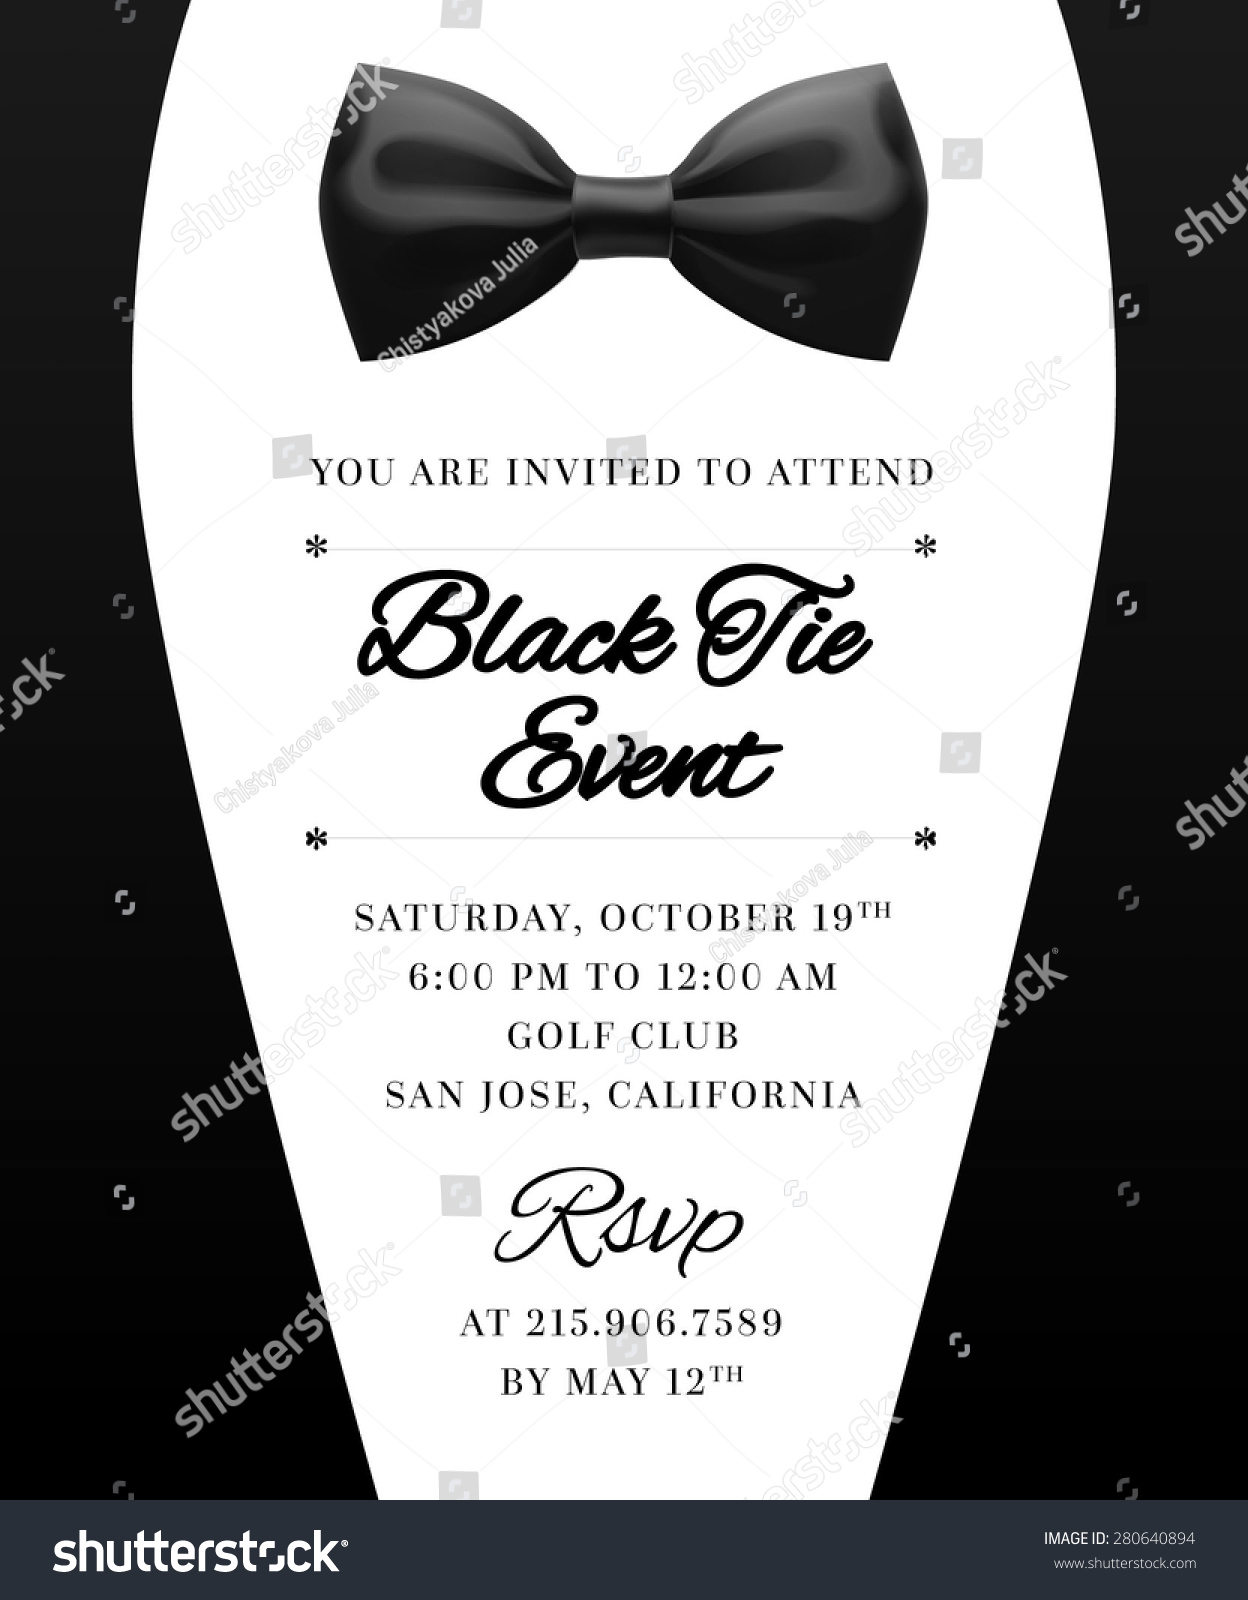 Elegant Vector Black Tie Event Invitation Stock Vector 280640894 - Shutterstock